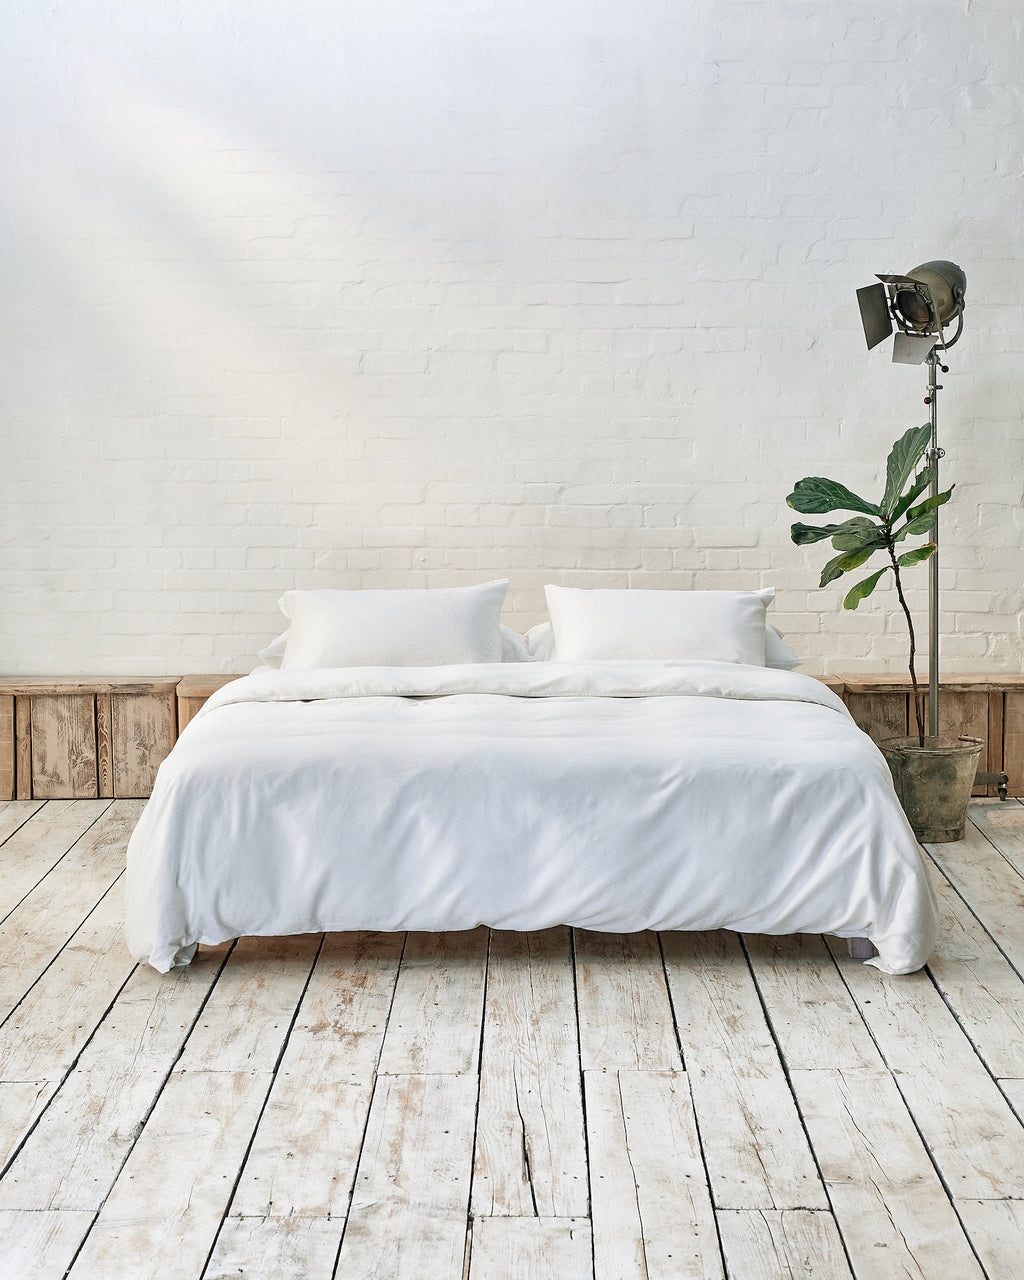 White bedding set in an industrial bedroom